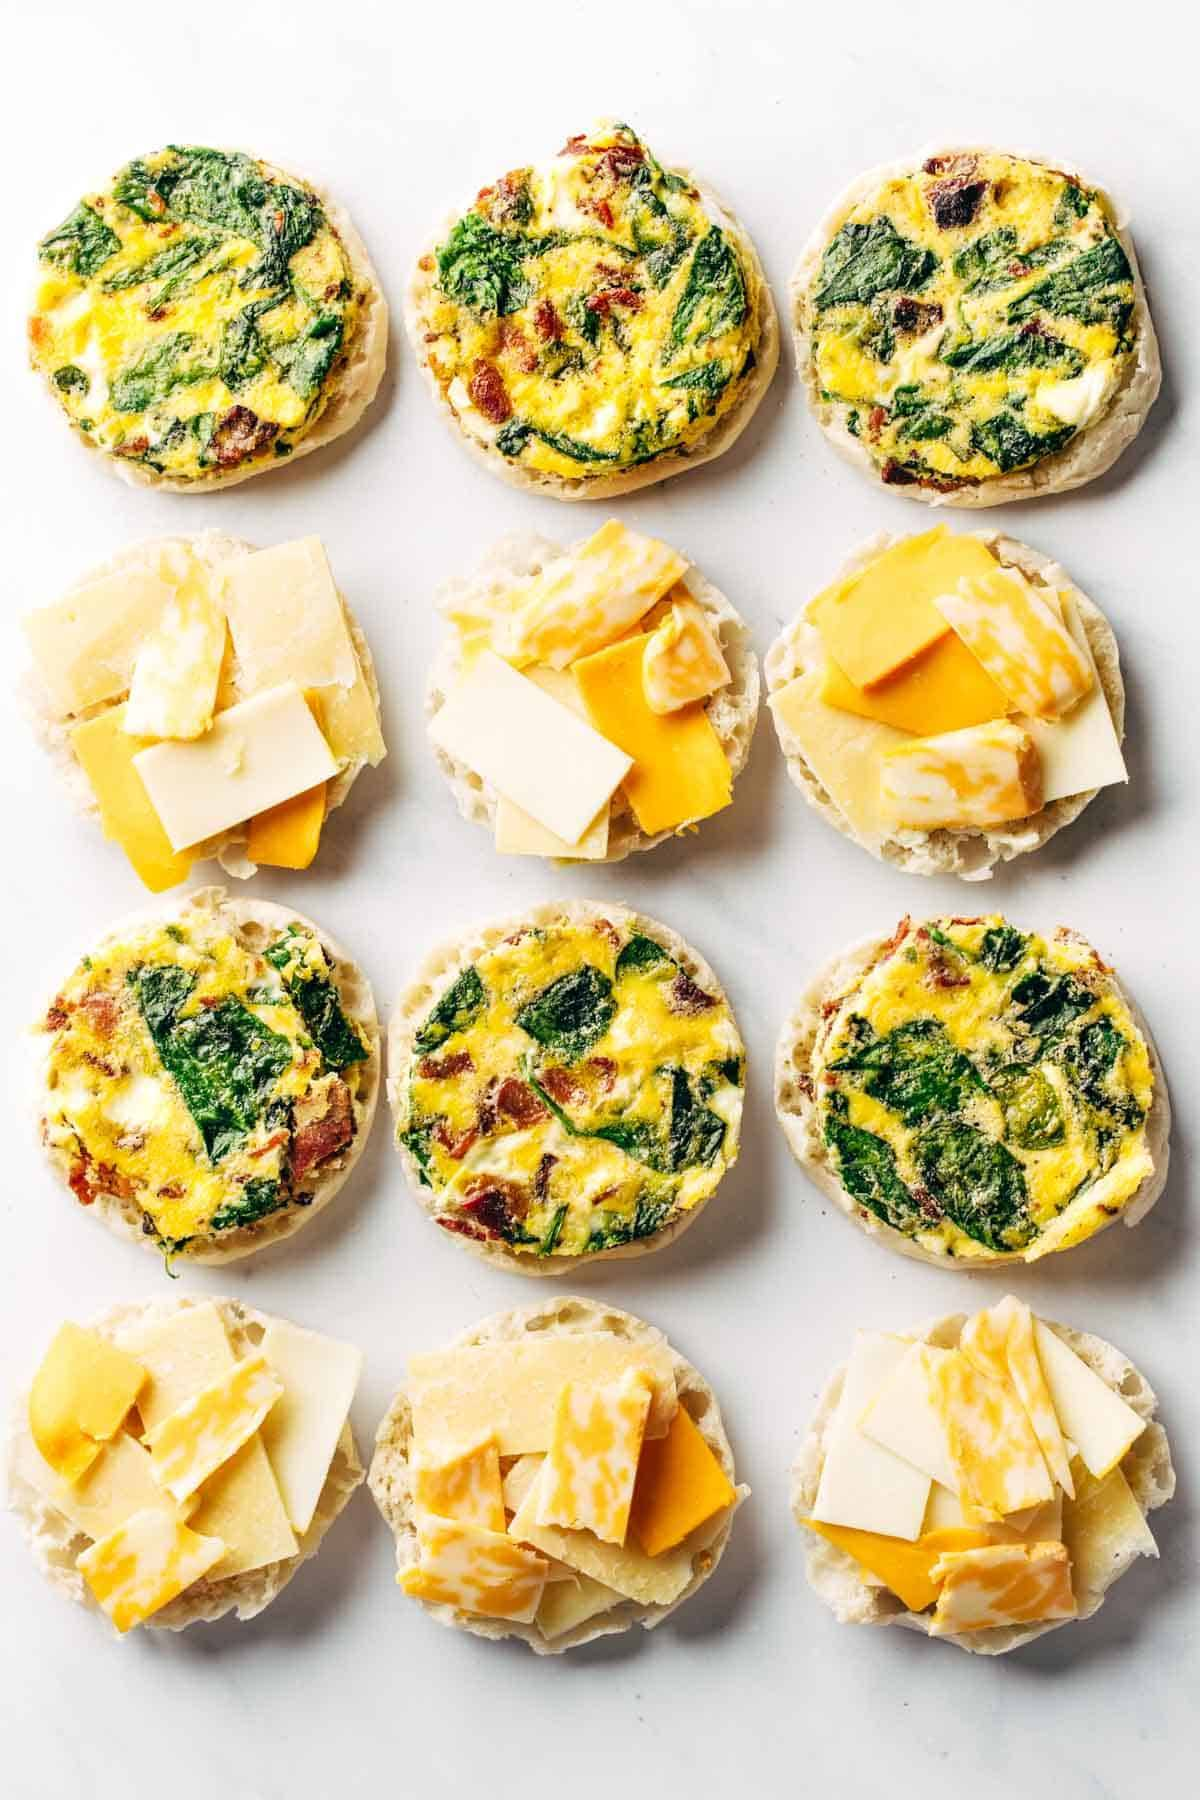 Breakfast sandwiches prepped for meal prep.